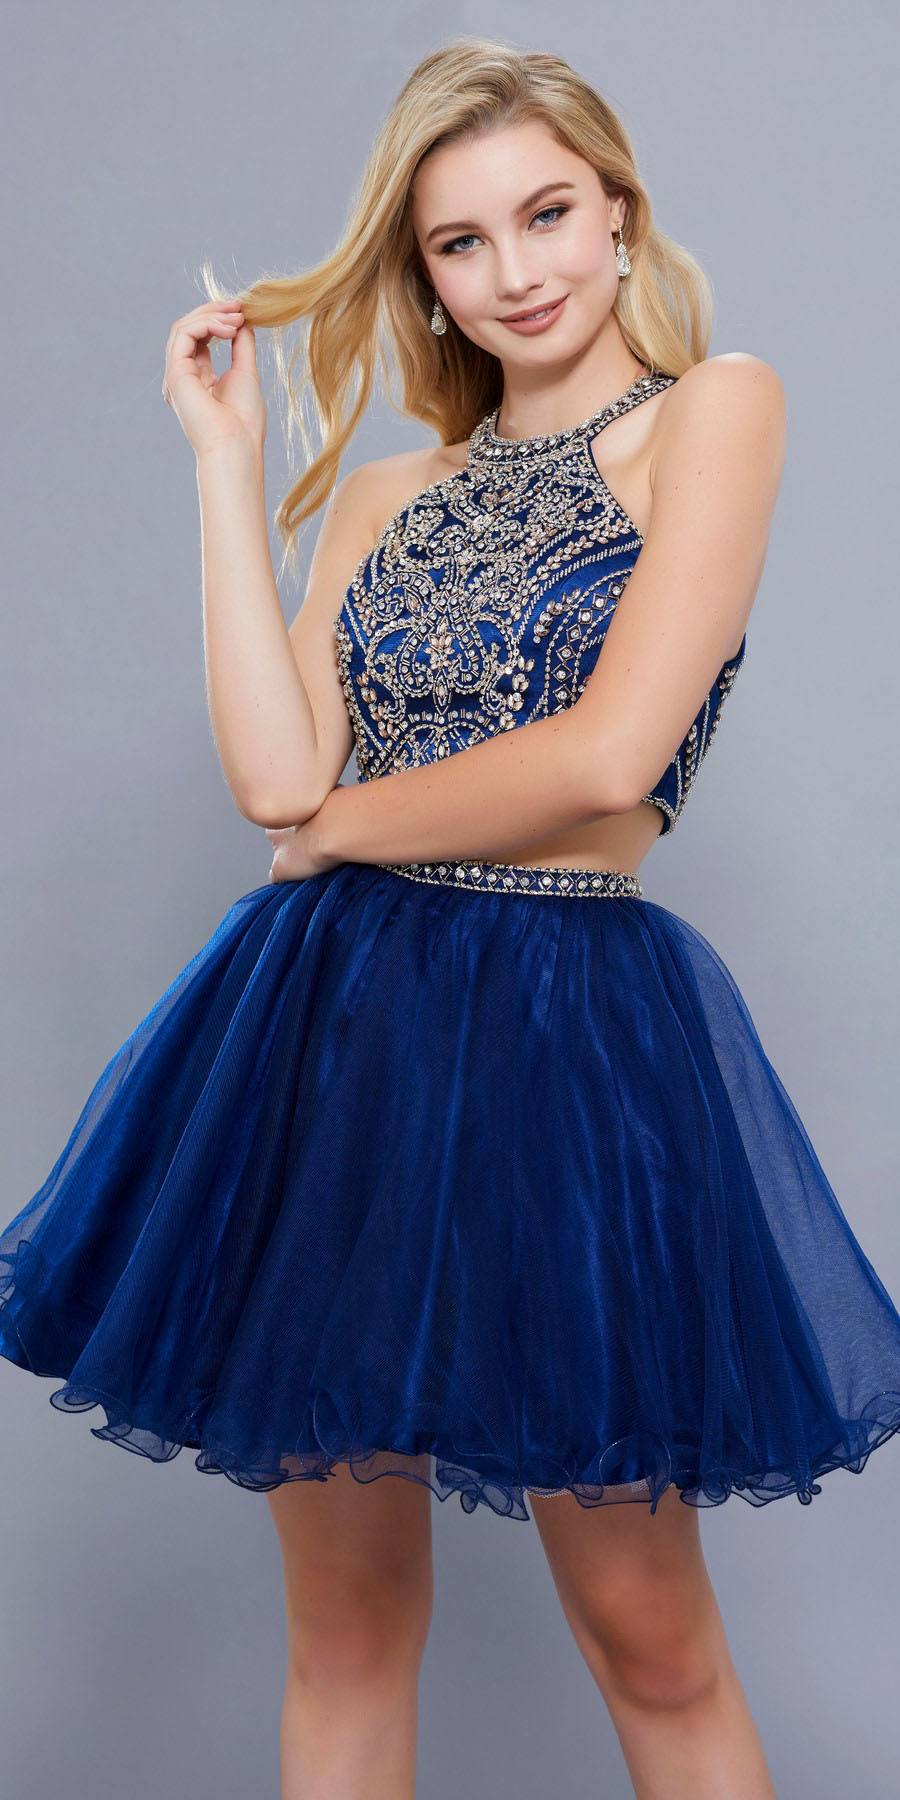 a5ca8cfc45ee Cut Out Back Two Piece Short Prom Dress Beaded Crop Top Navy Blue. Tap to  expand